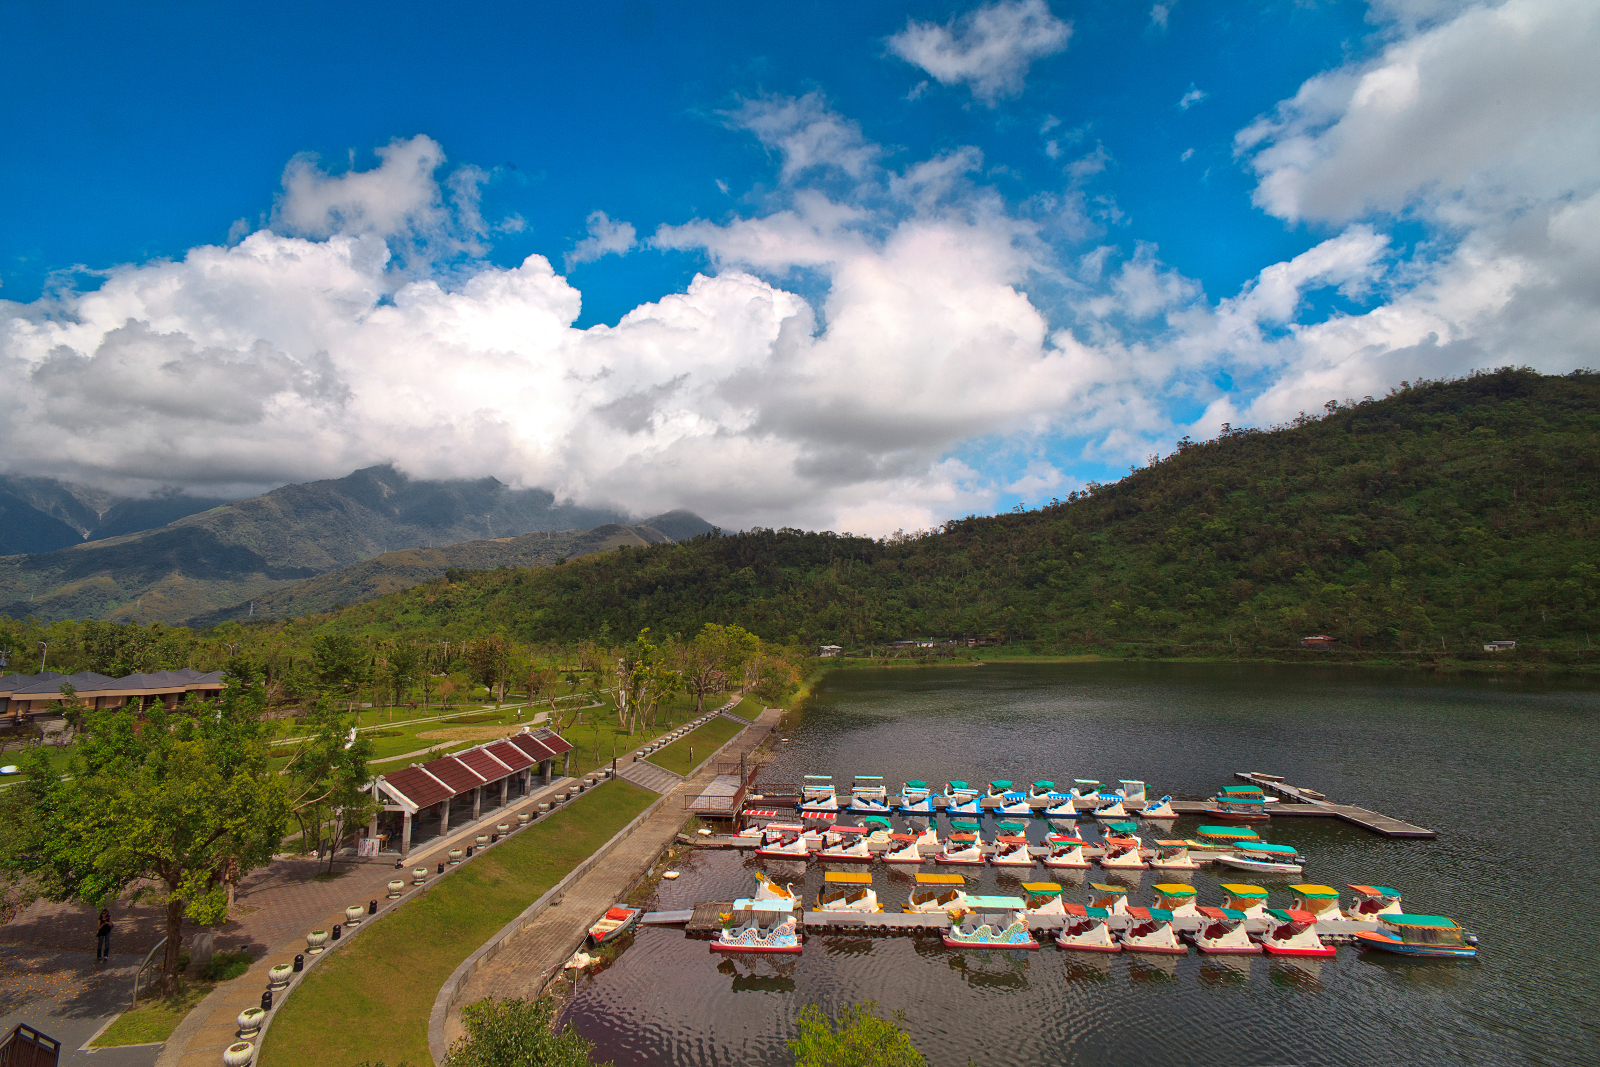 Hualien Nature Day Tour - Liyu Lake, Ruisui Ranch and more!